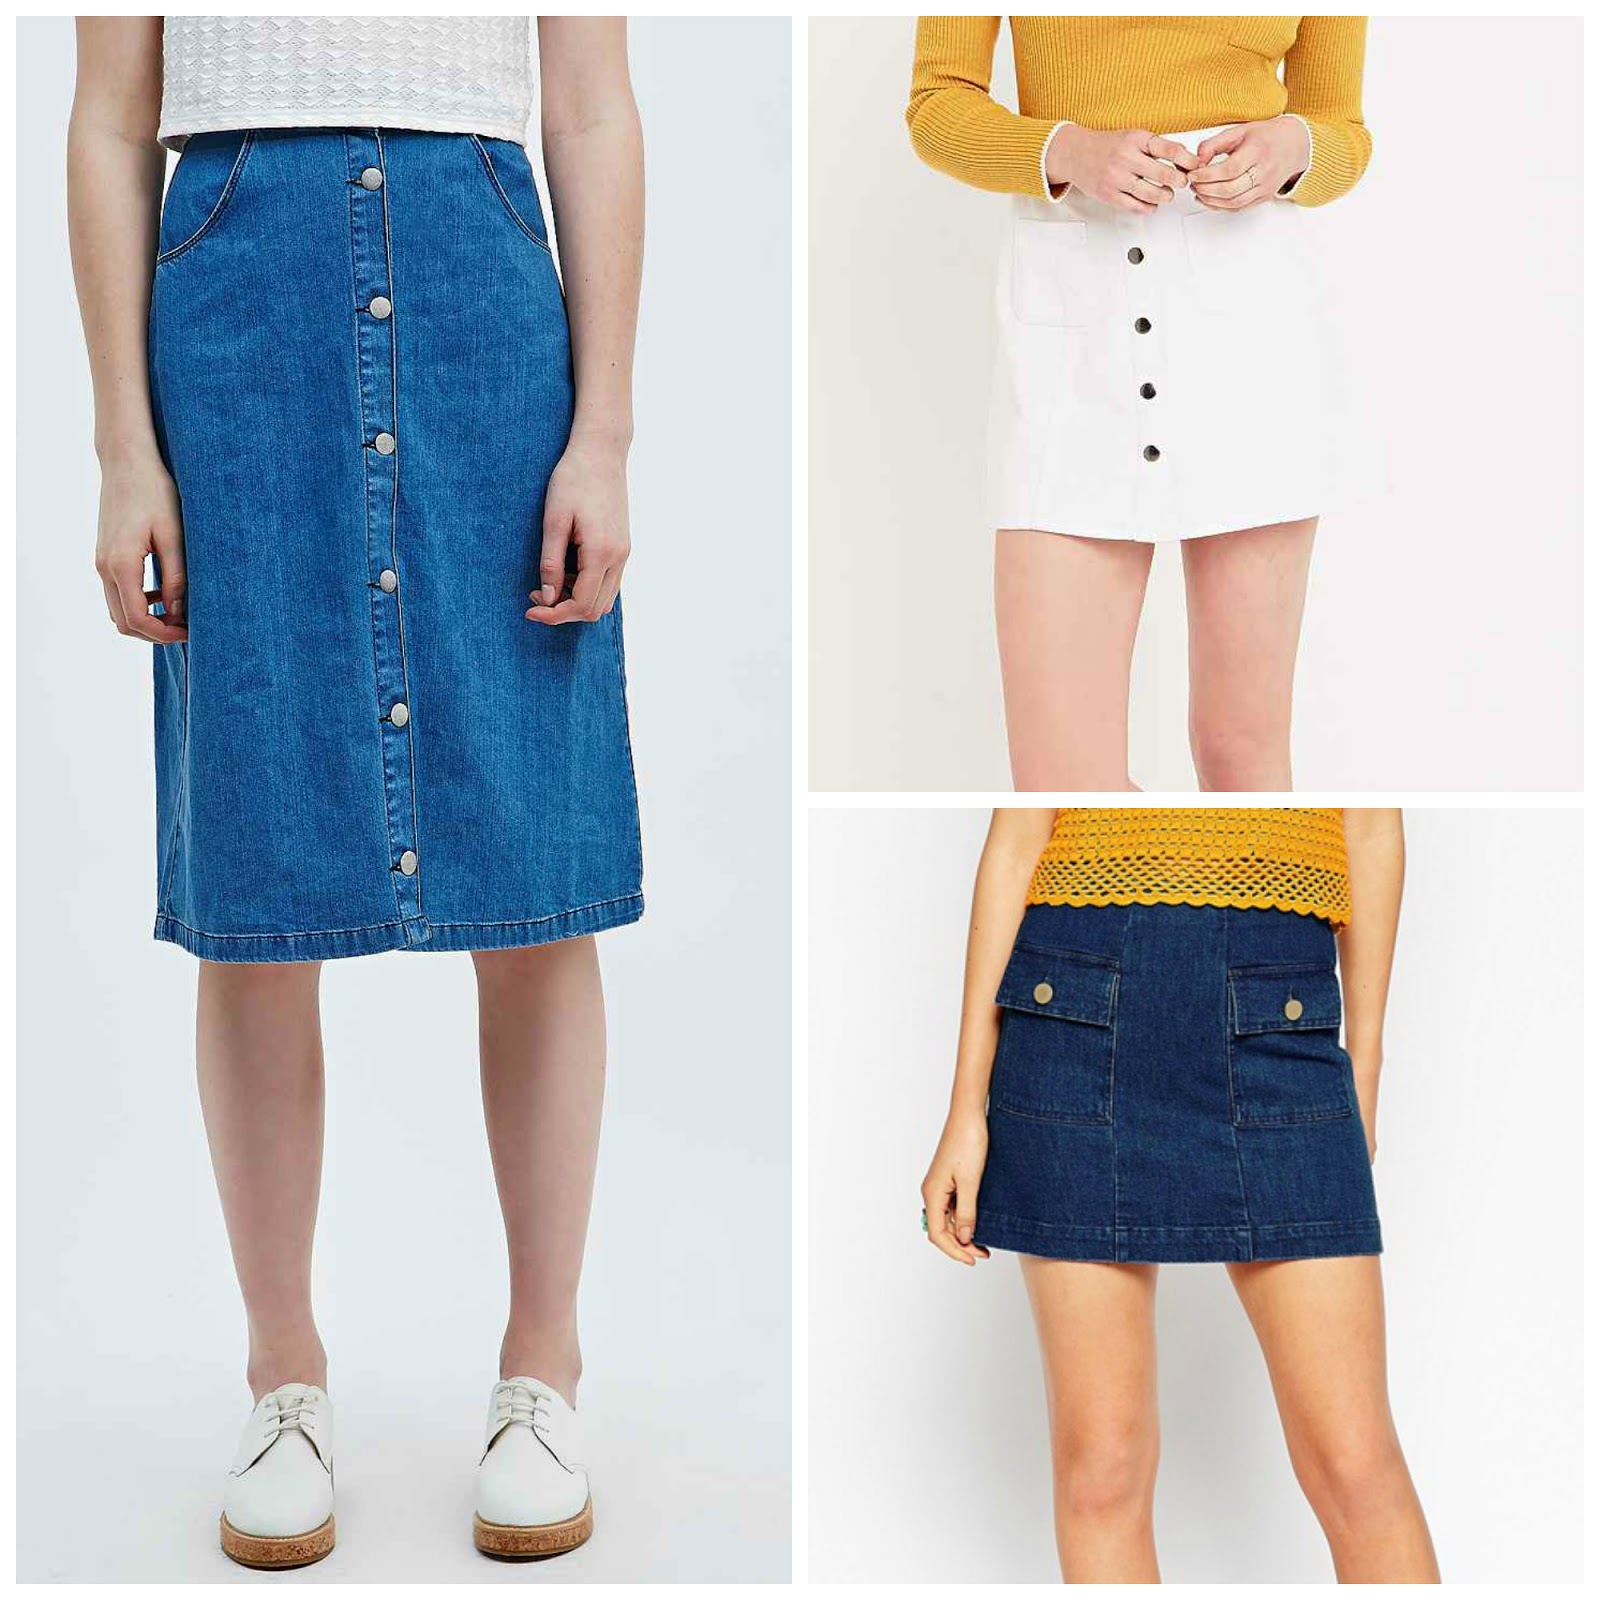 2a941610d48 Trend Analysis  The denim skirt - Chromantics